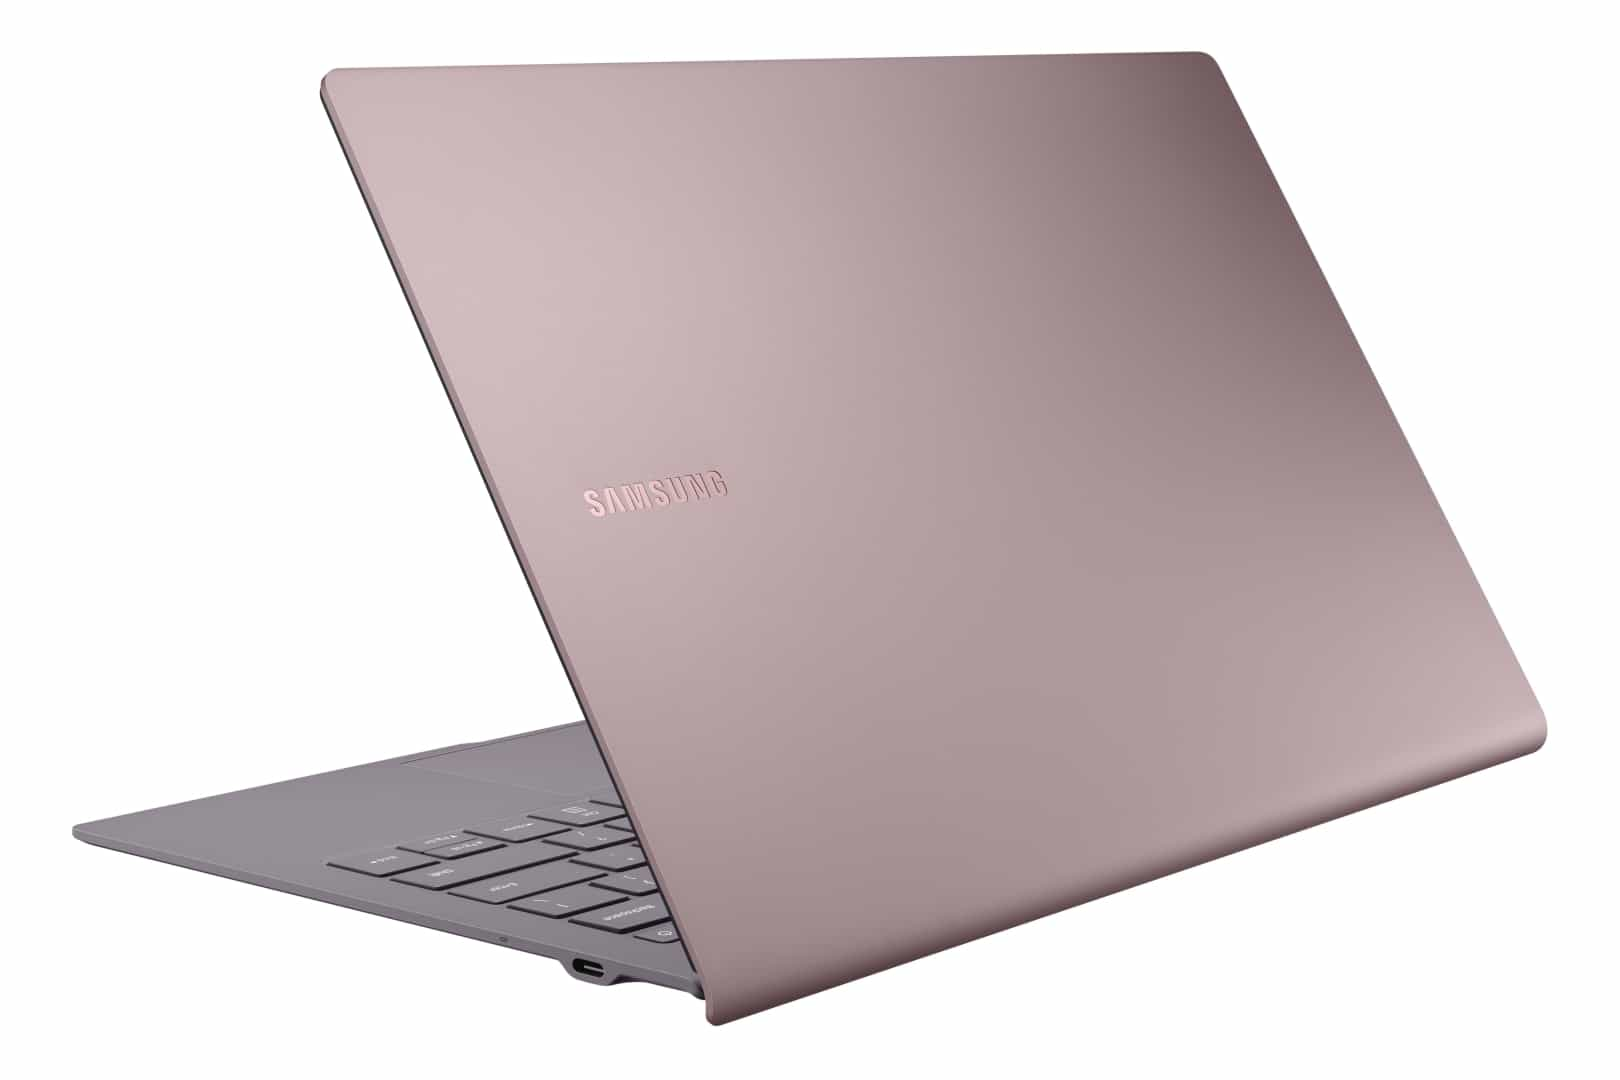 Galaxy Book S Product Images 2